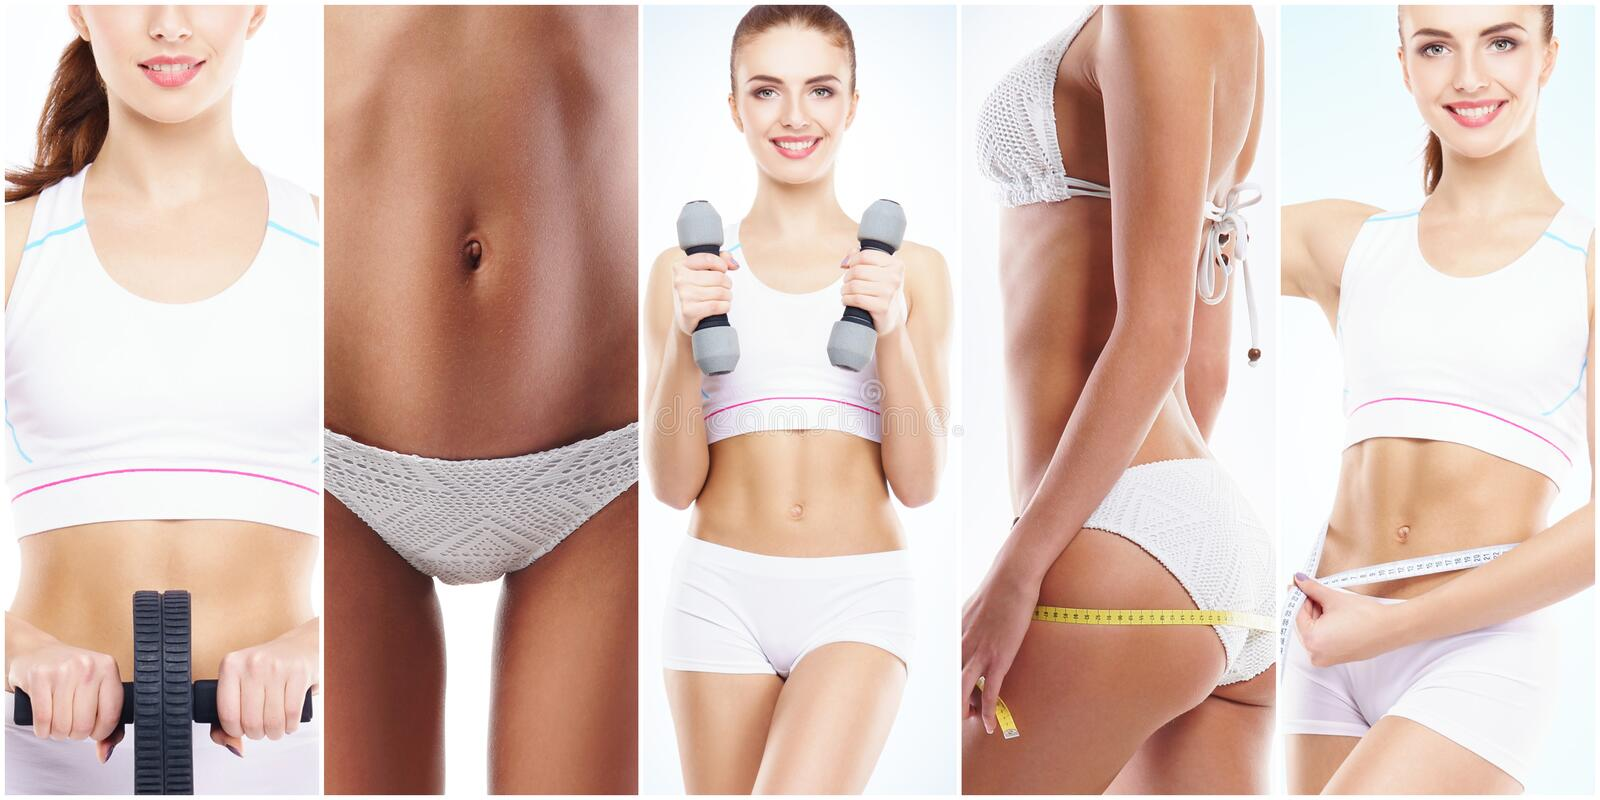 Beautiful and fit woman in a fitness workout. Isolated collage. Sport, nutrition, health and weight loss concept. stock images